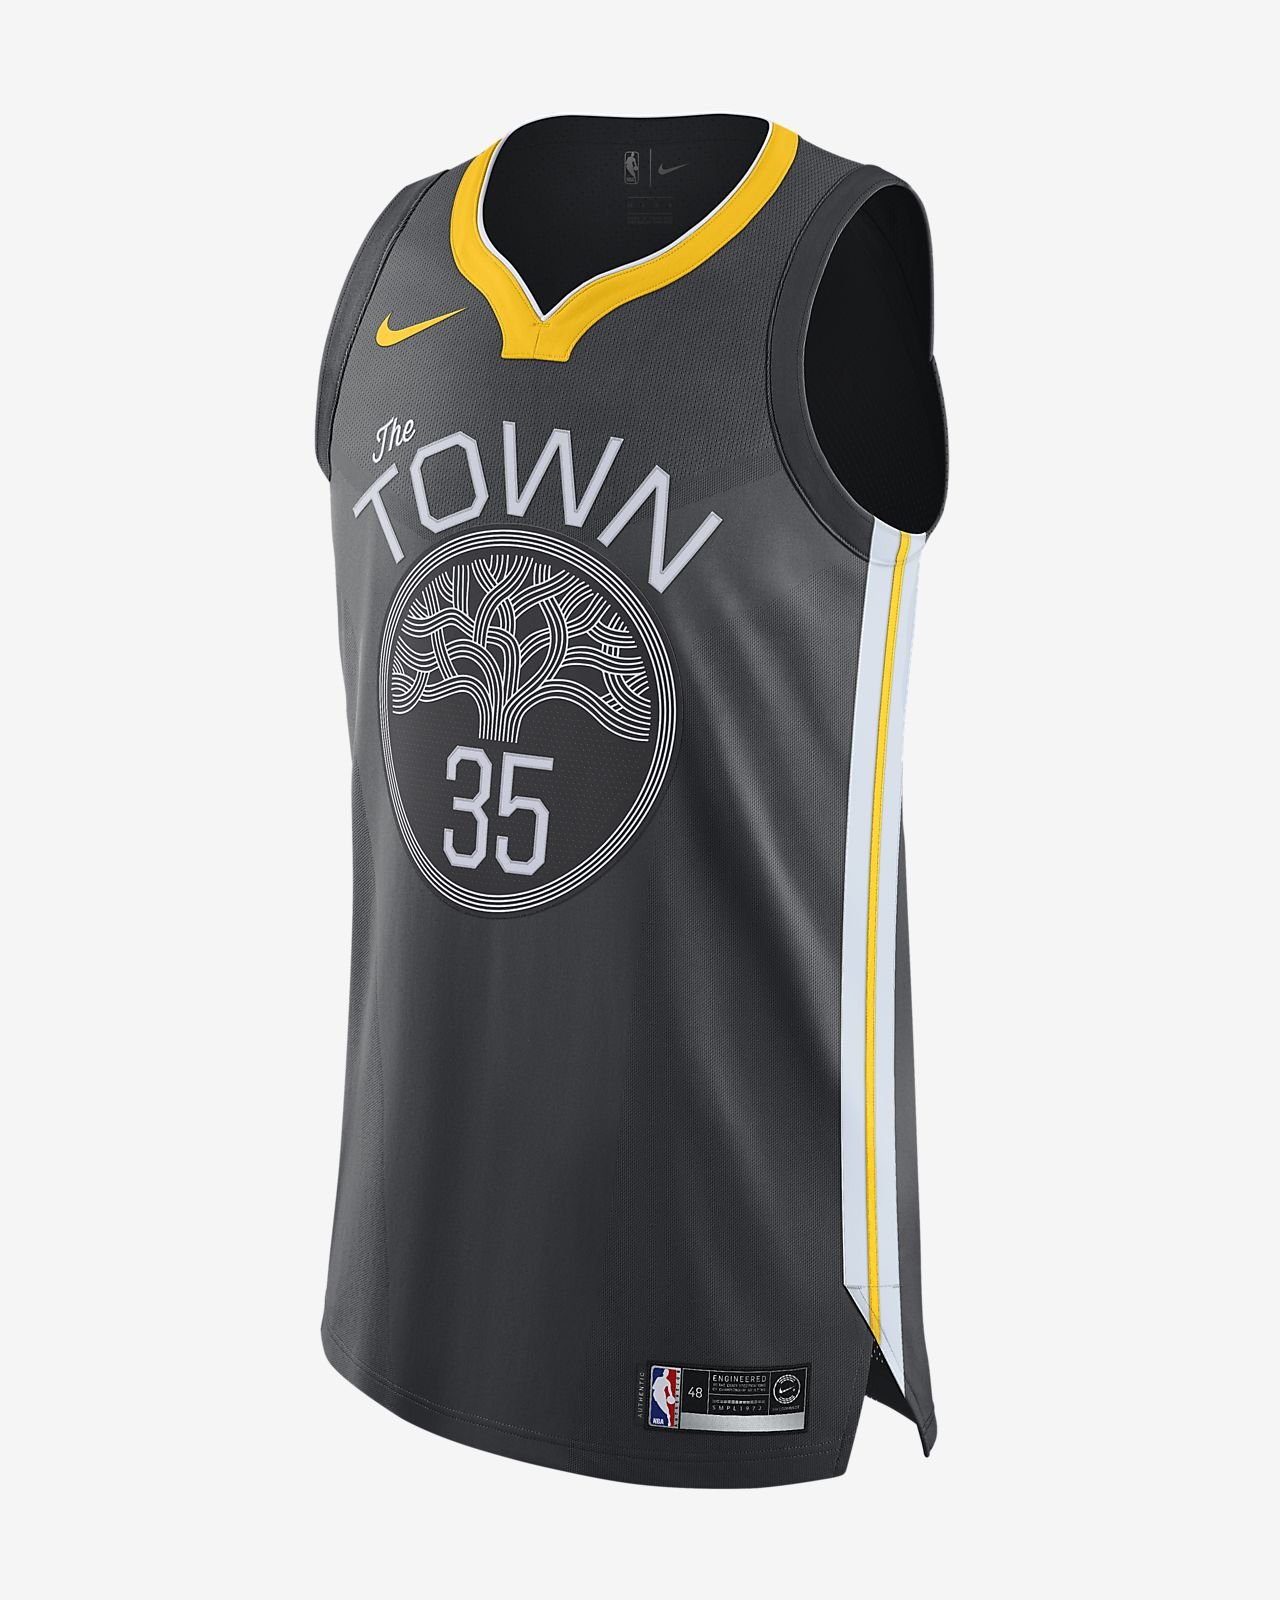 Men s Nike NBA Connected Jersey. Kevin Durant Statement Edition Authentic (Golden  State Warriors) 5e74900da46f